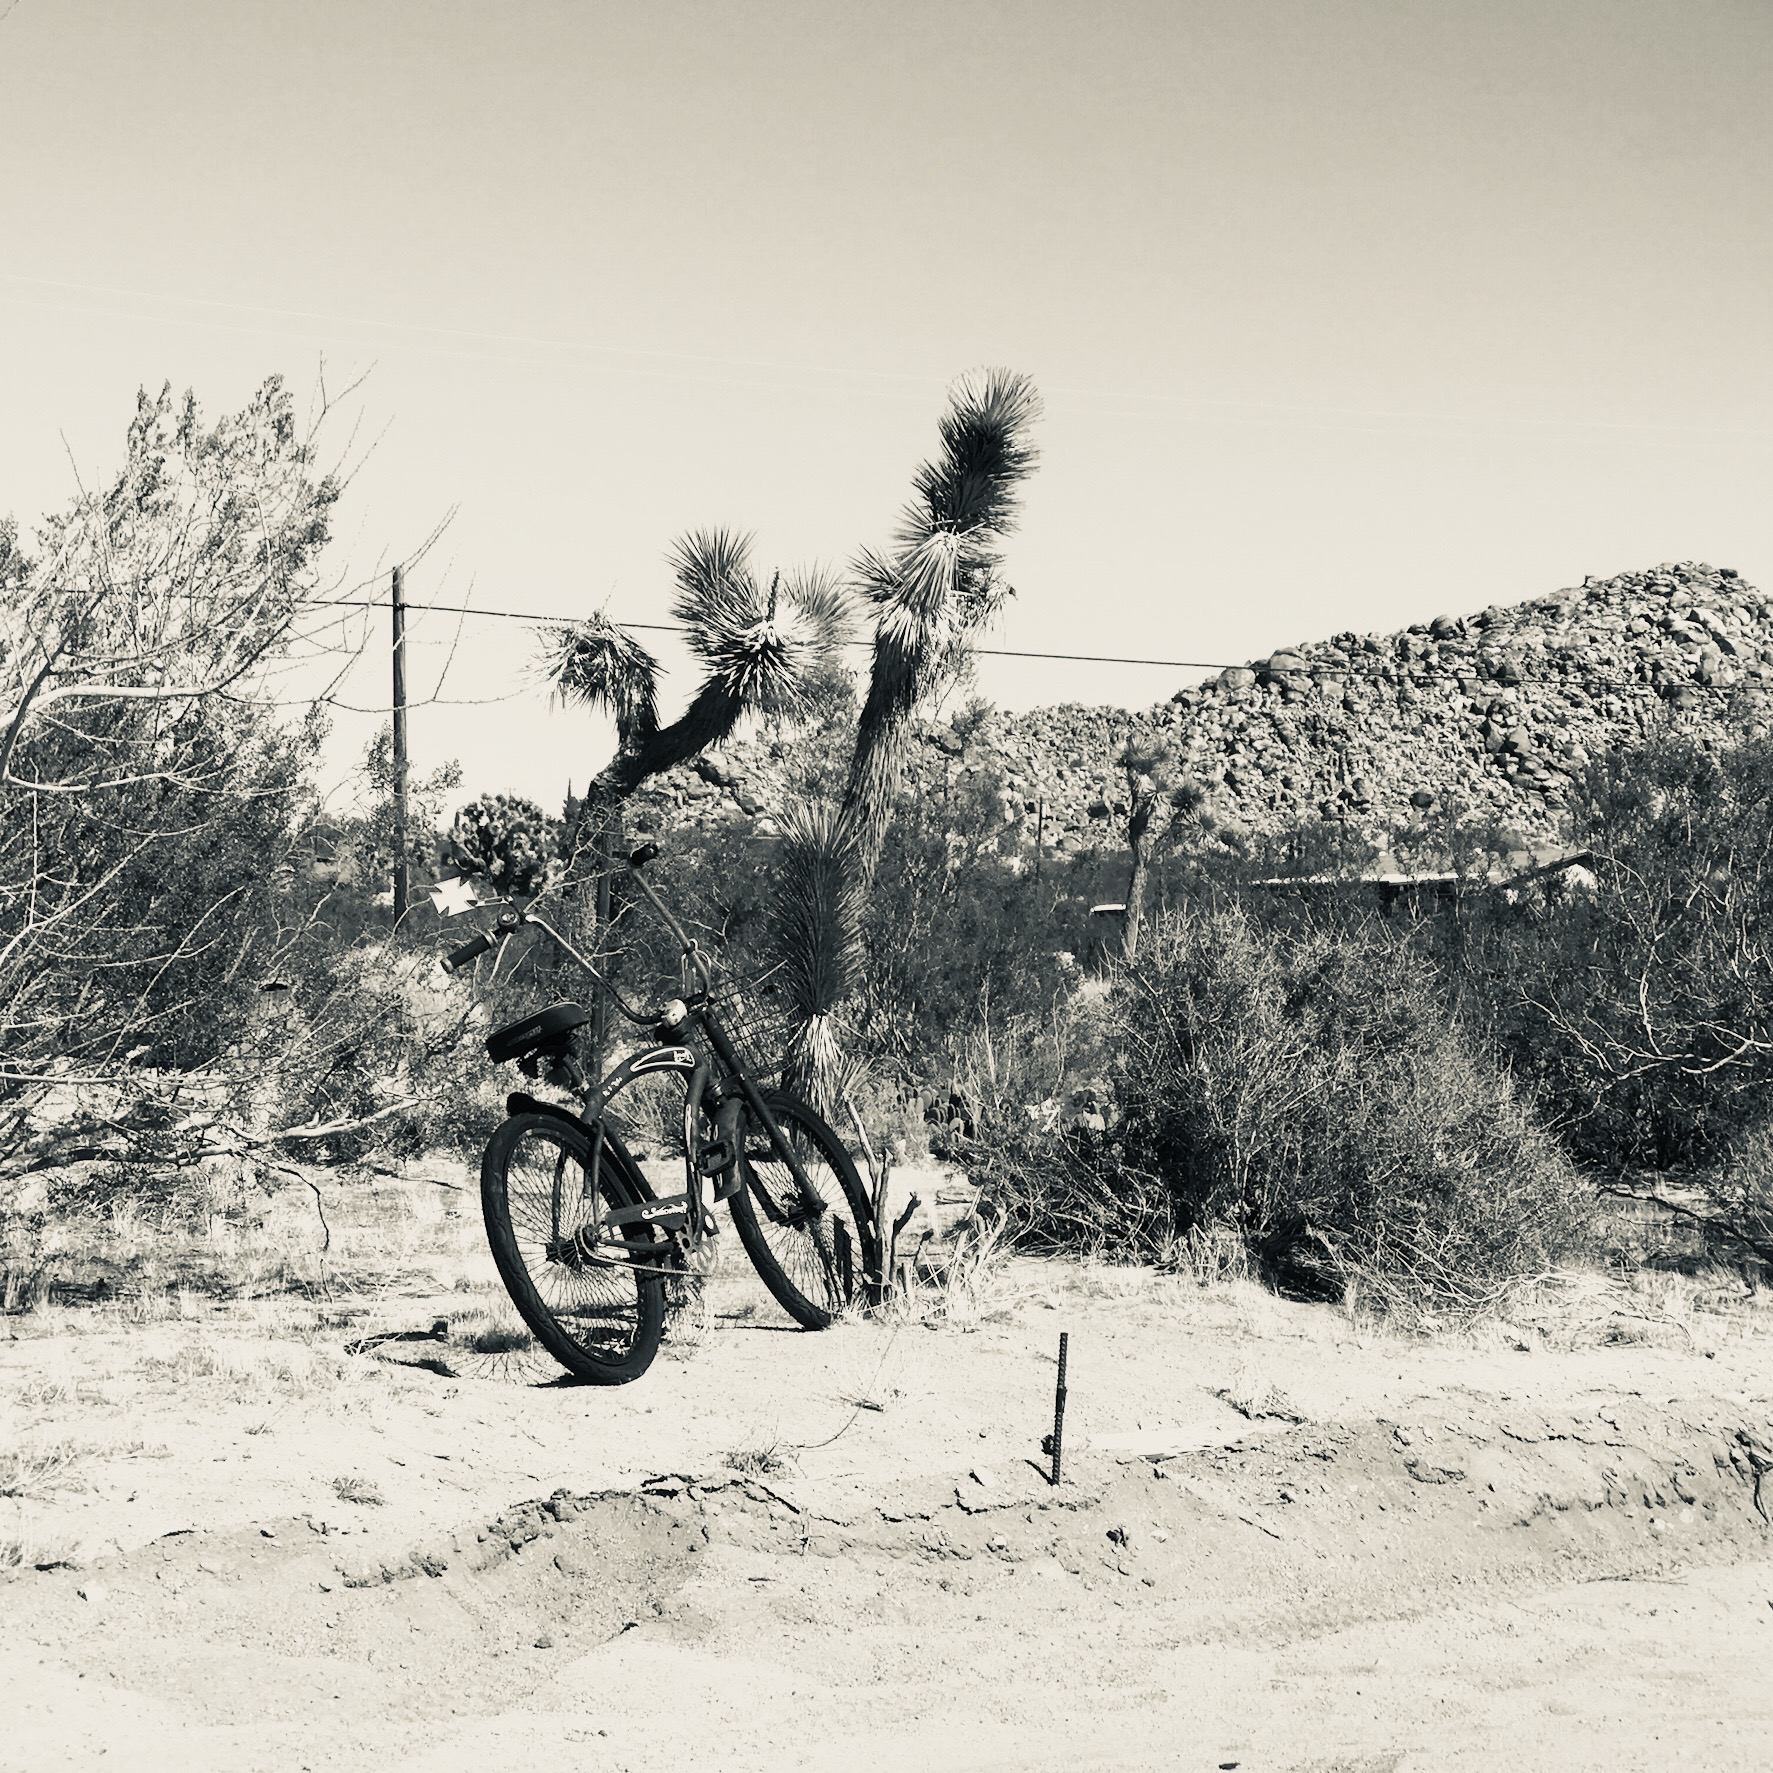 Bicycle in Joshua Tree